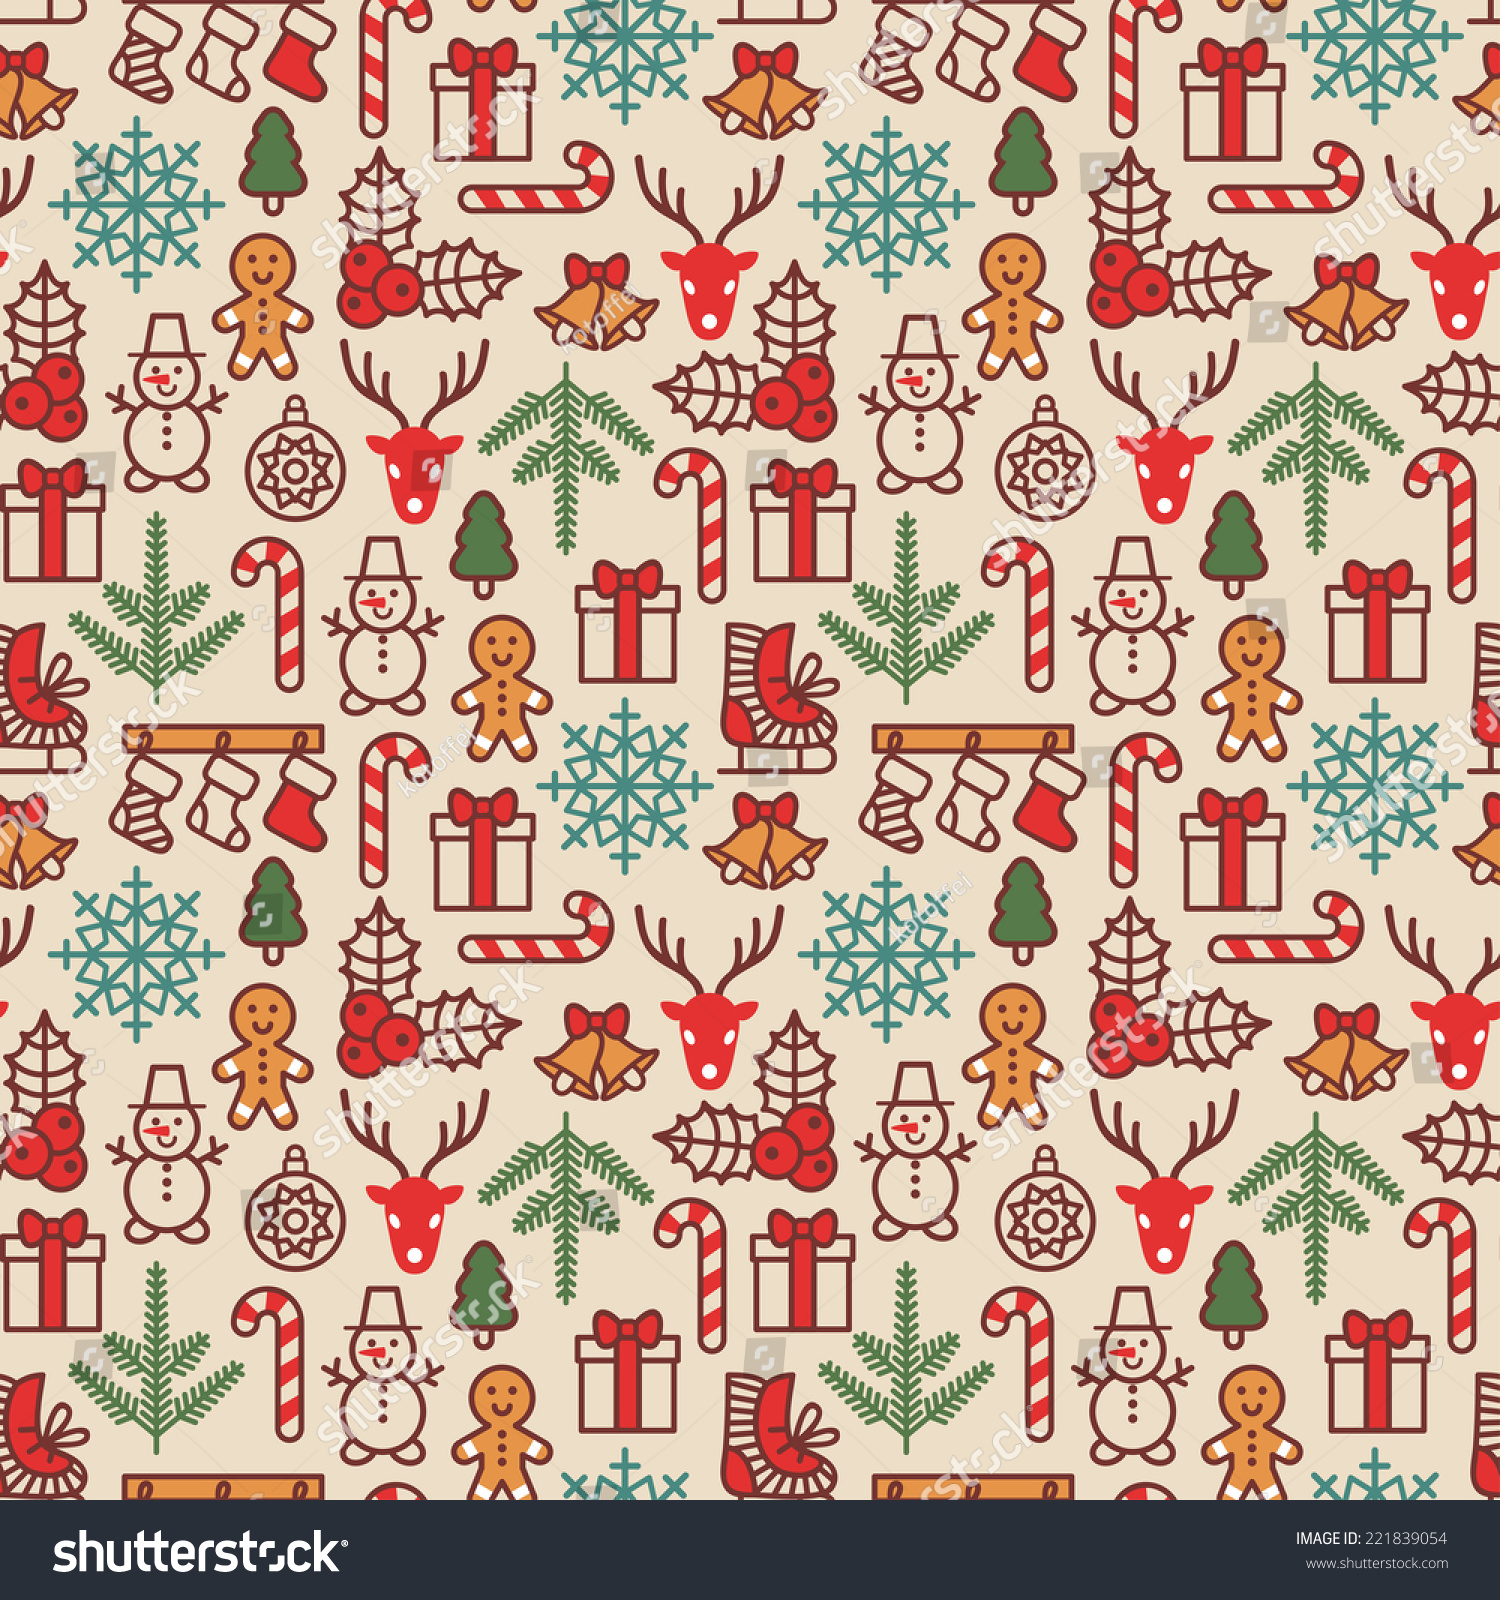 ... pattern in vintage style. Cute Xmas characters. Deer head. Snowman in